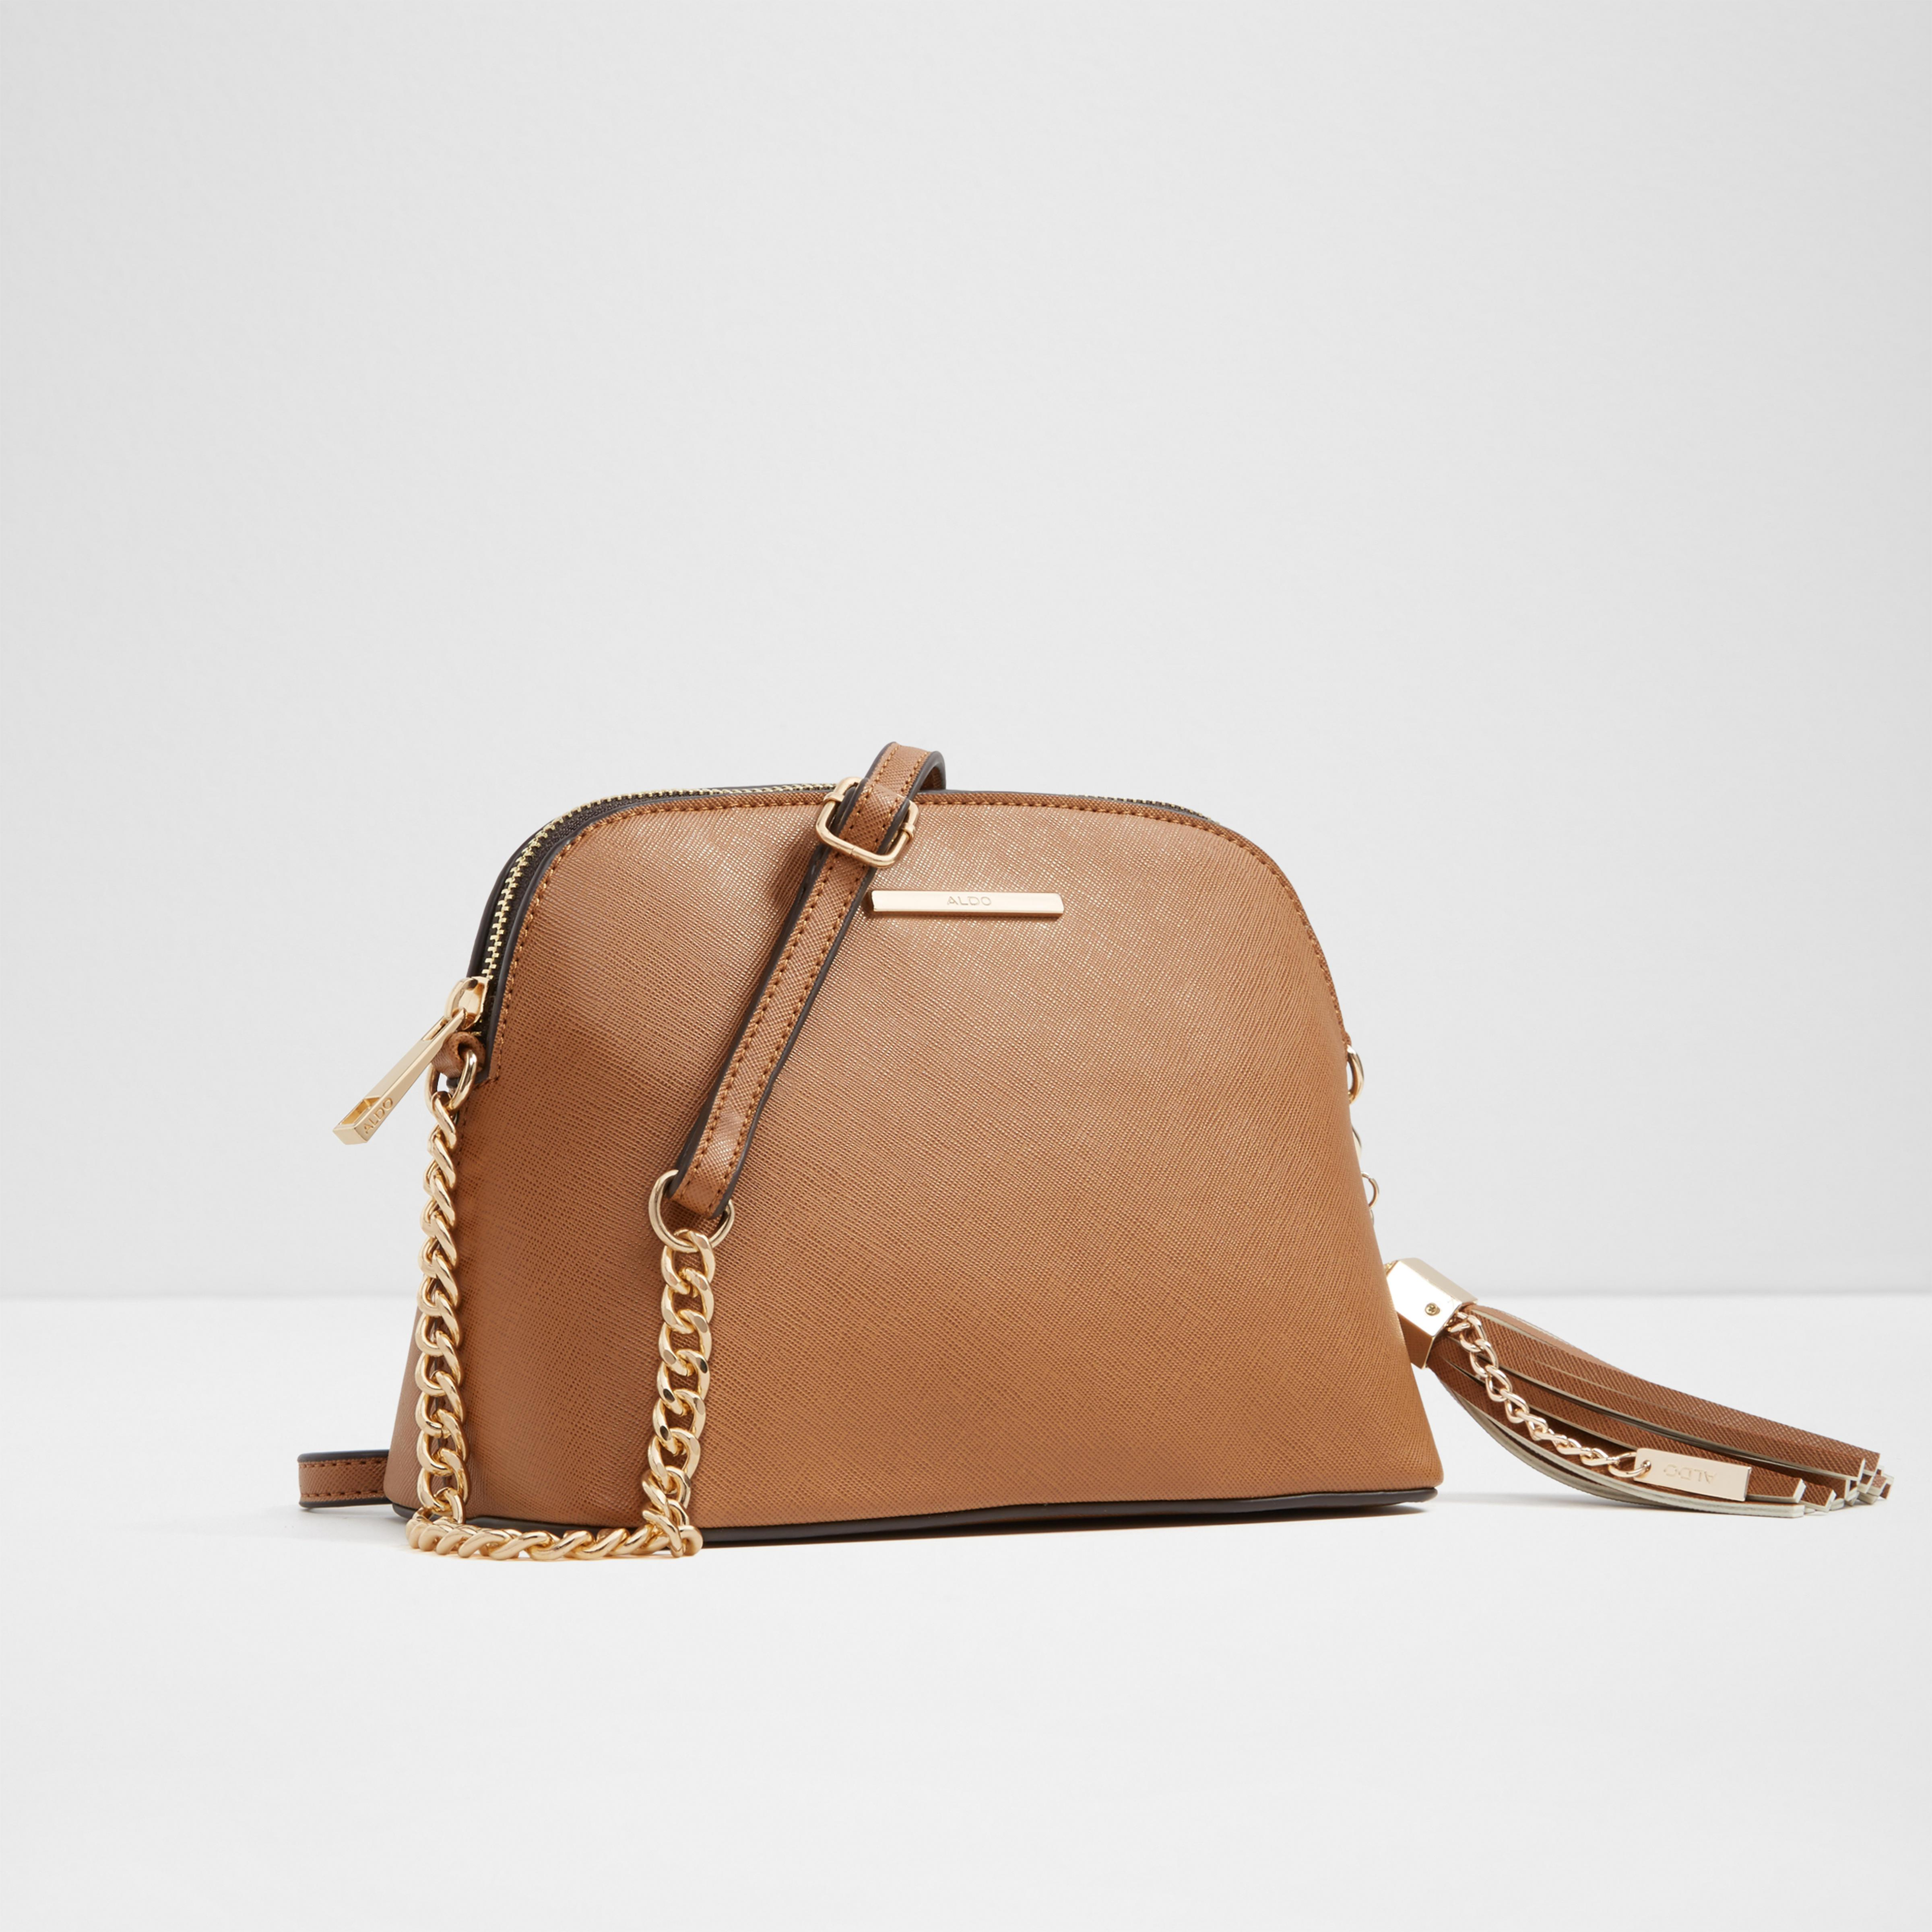 ALDO - Brown Elroodie - Lyst. View fullscreen b1779622fb31b